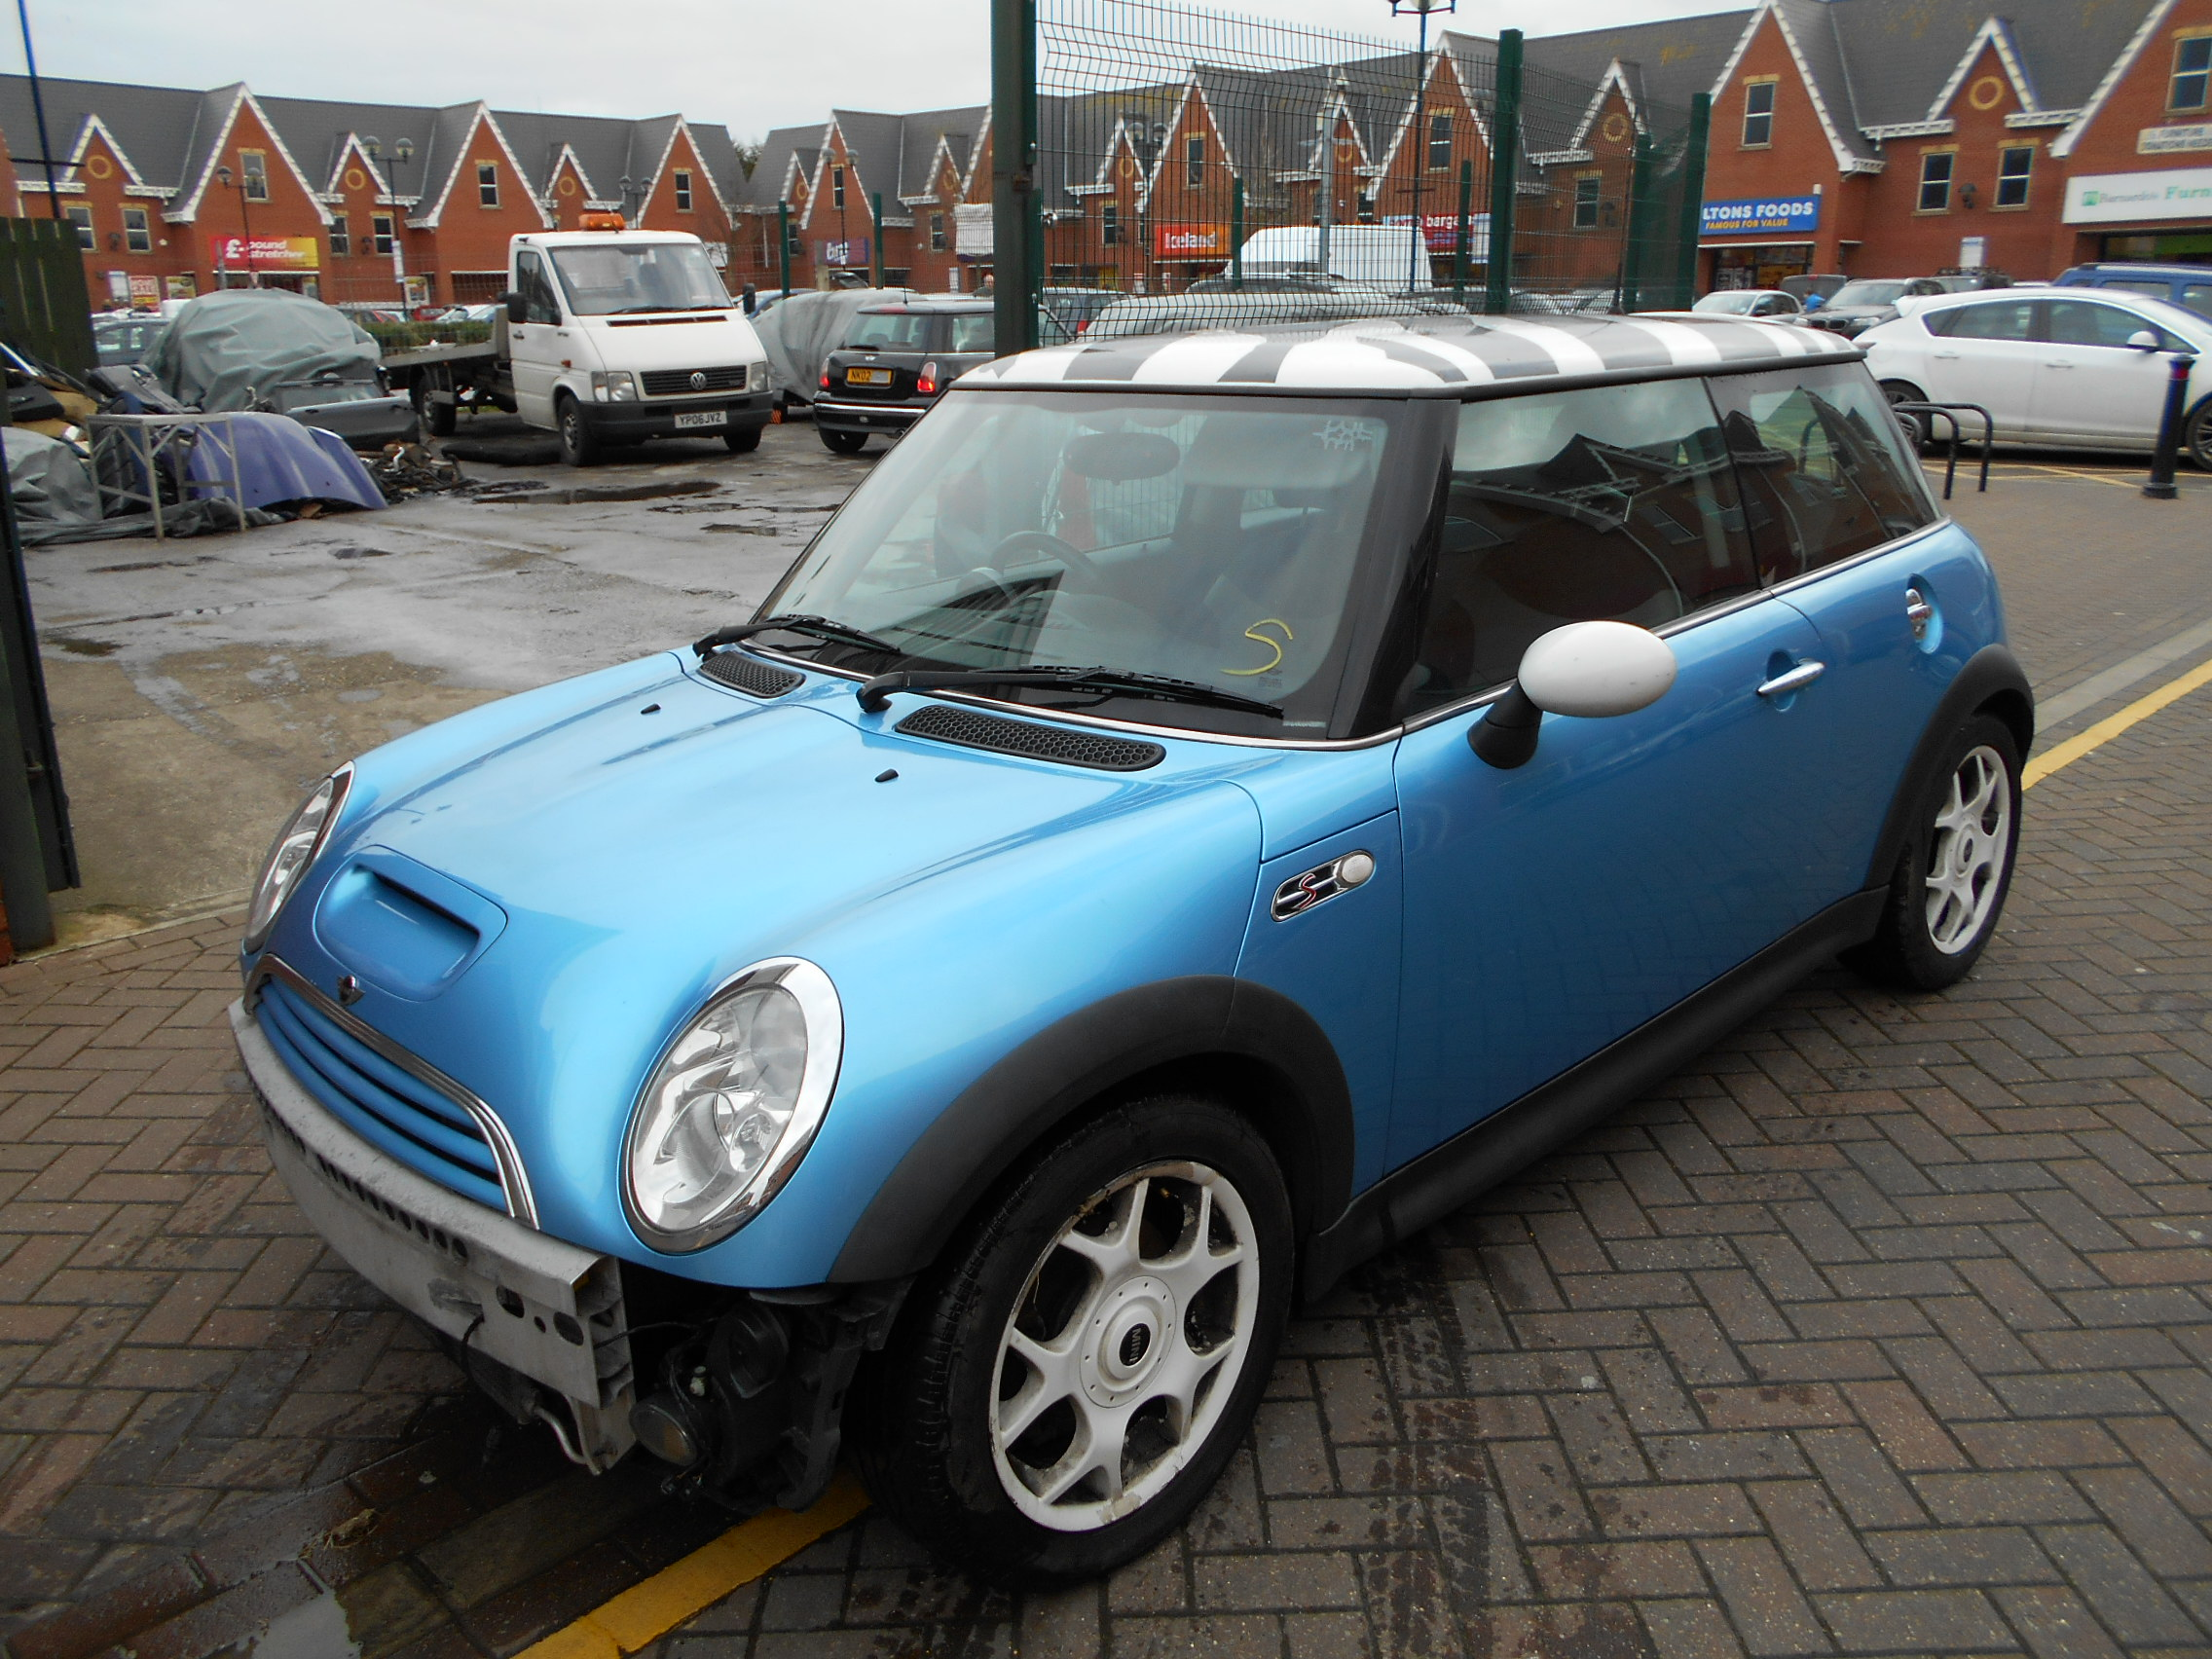 02 Blue 1.6 BMW Mini Cooper S - 3